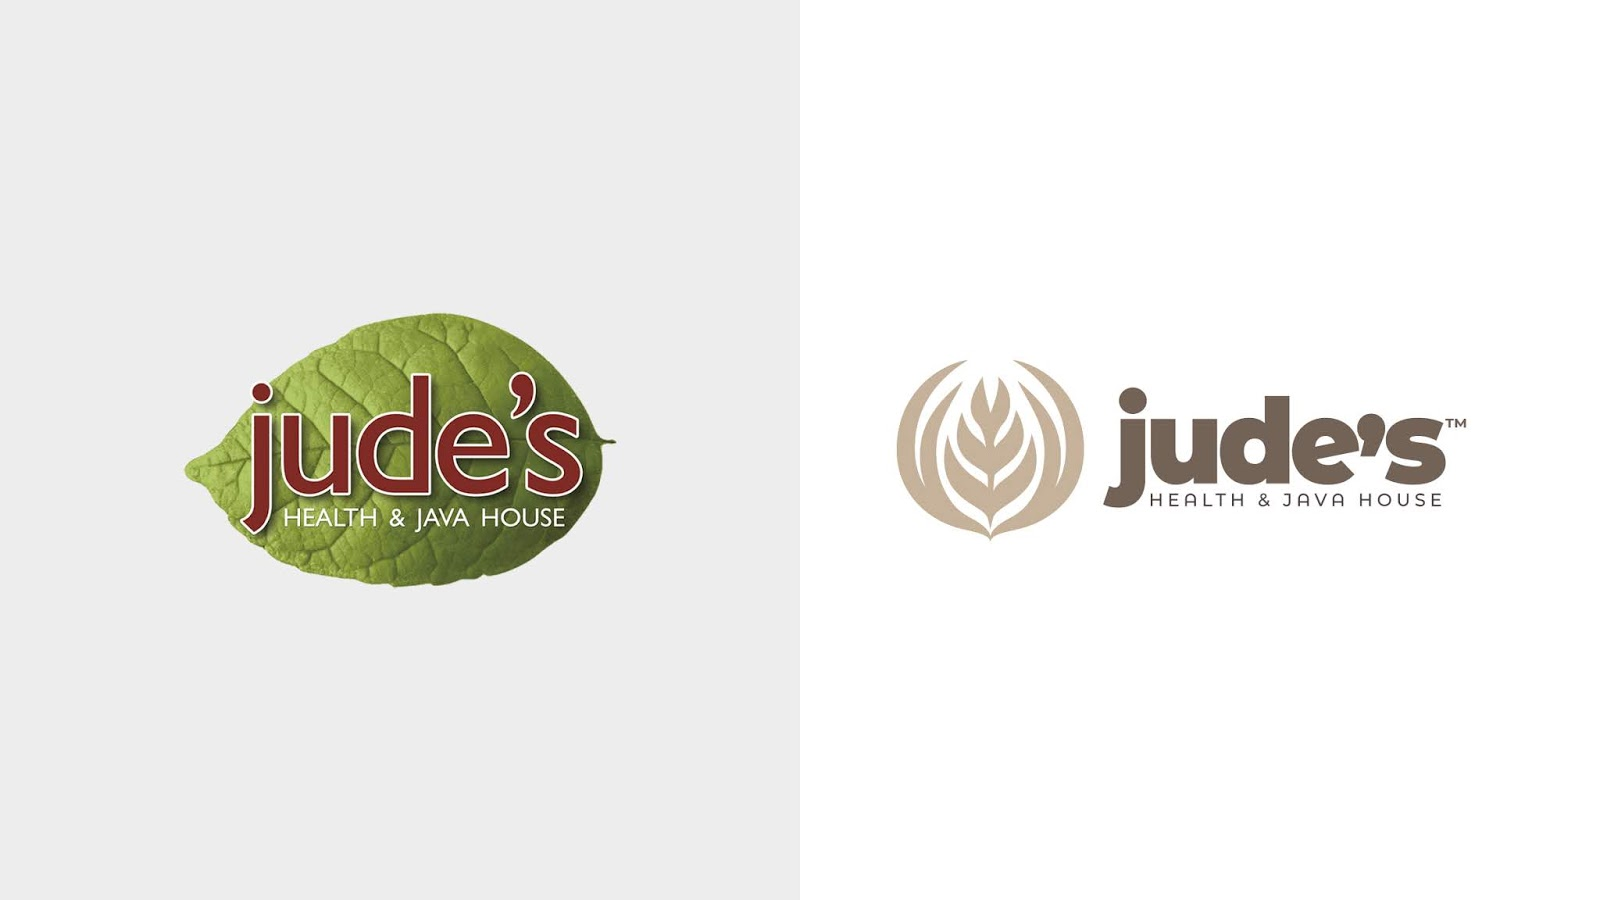 A side-by-side comparison of the new and previous Jude's logo marks